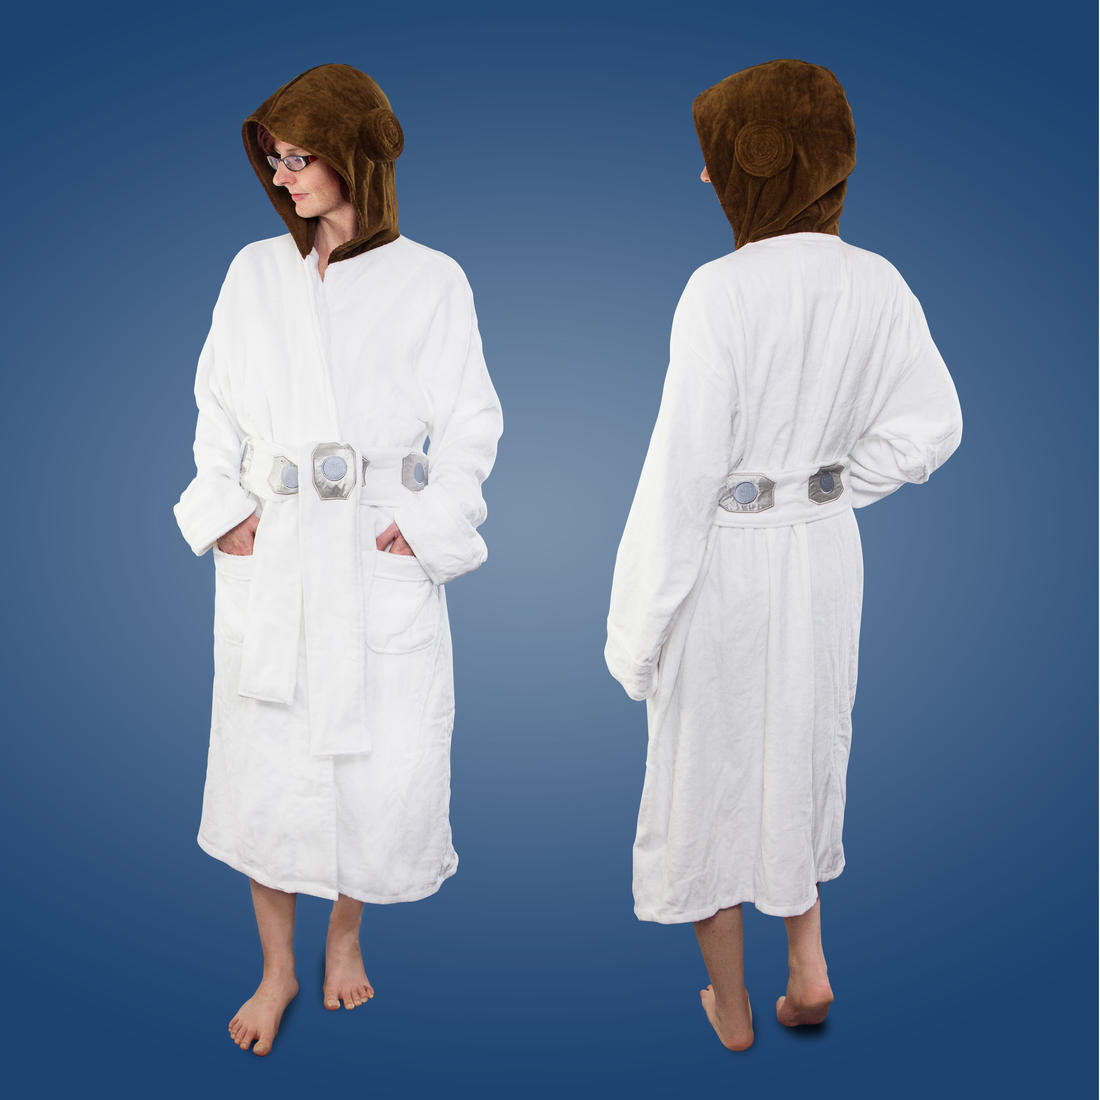 Princess Leia Star Wars Bath Robe Getdigital